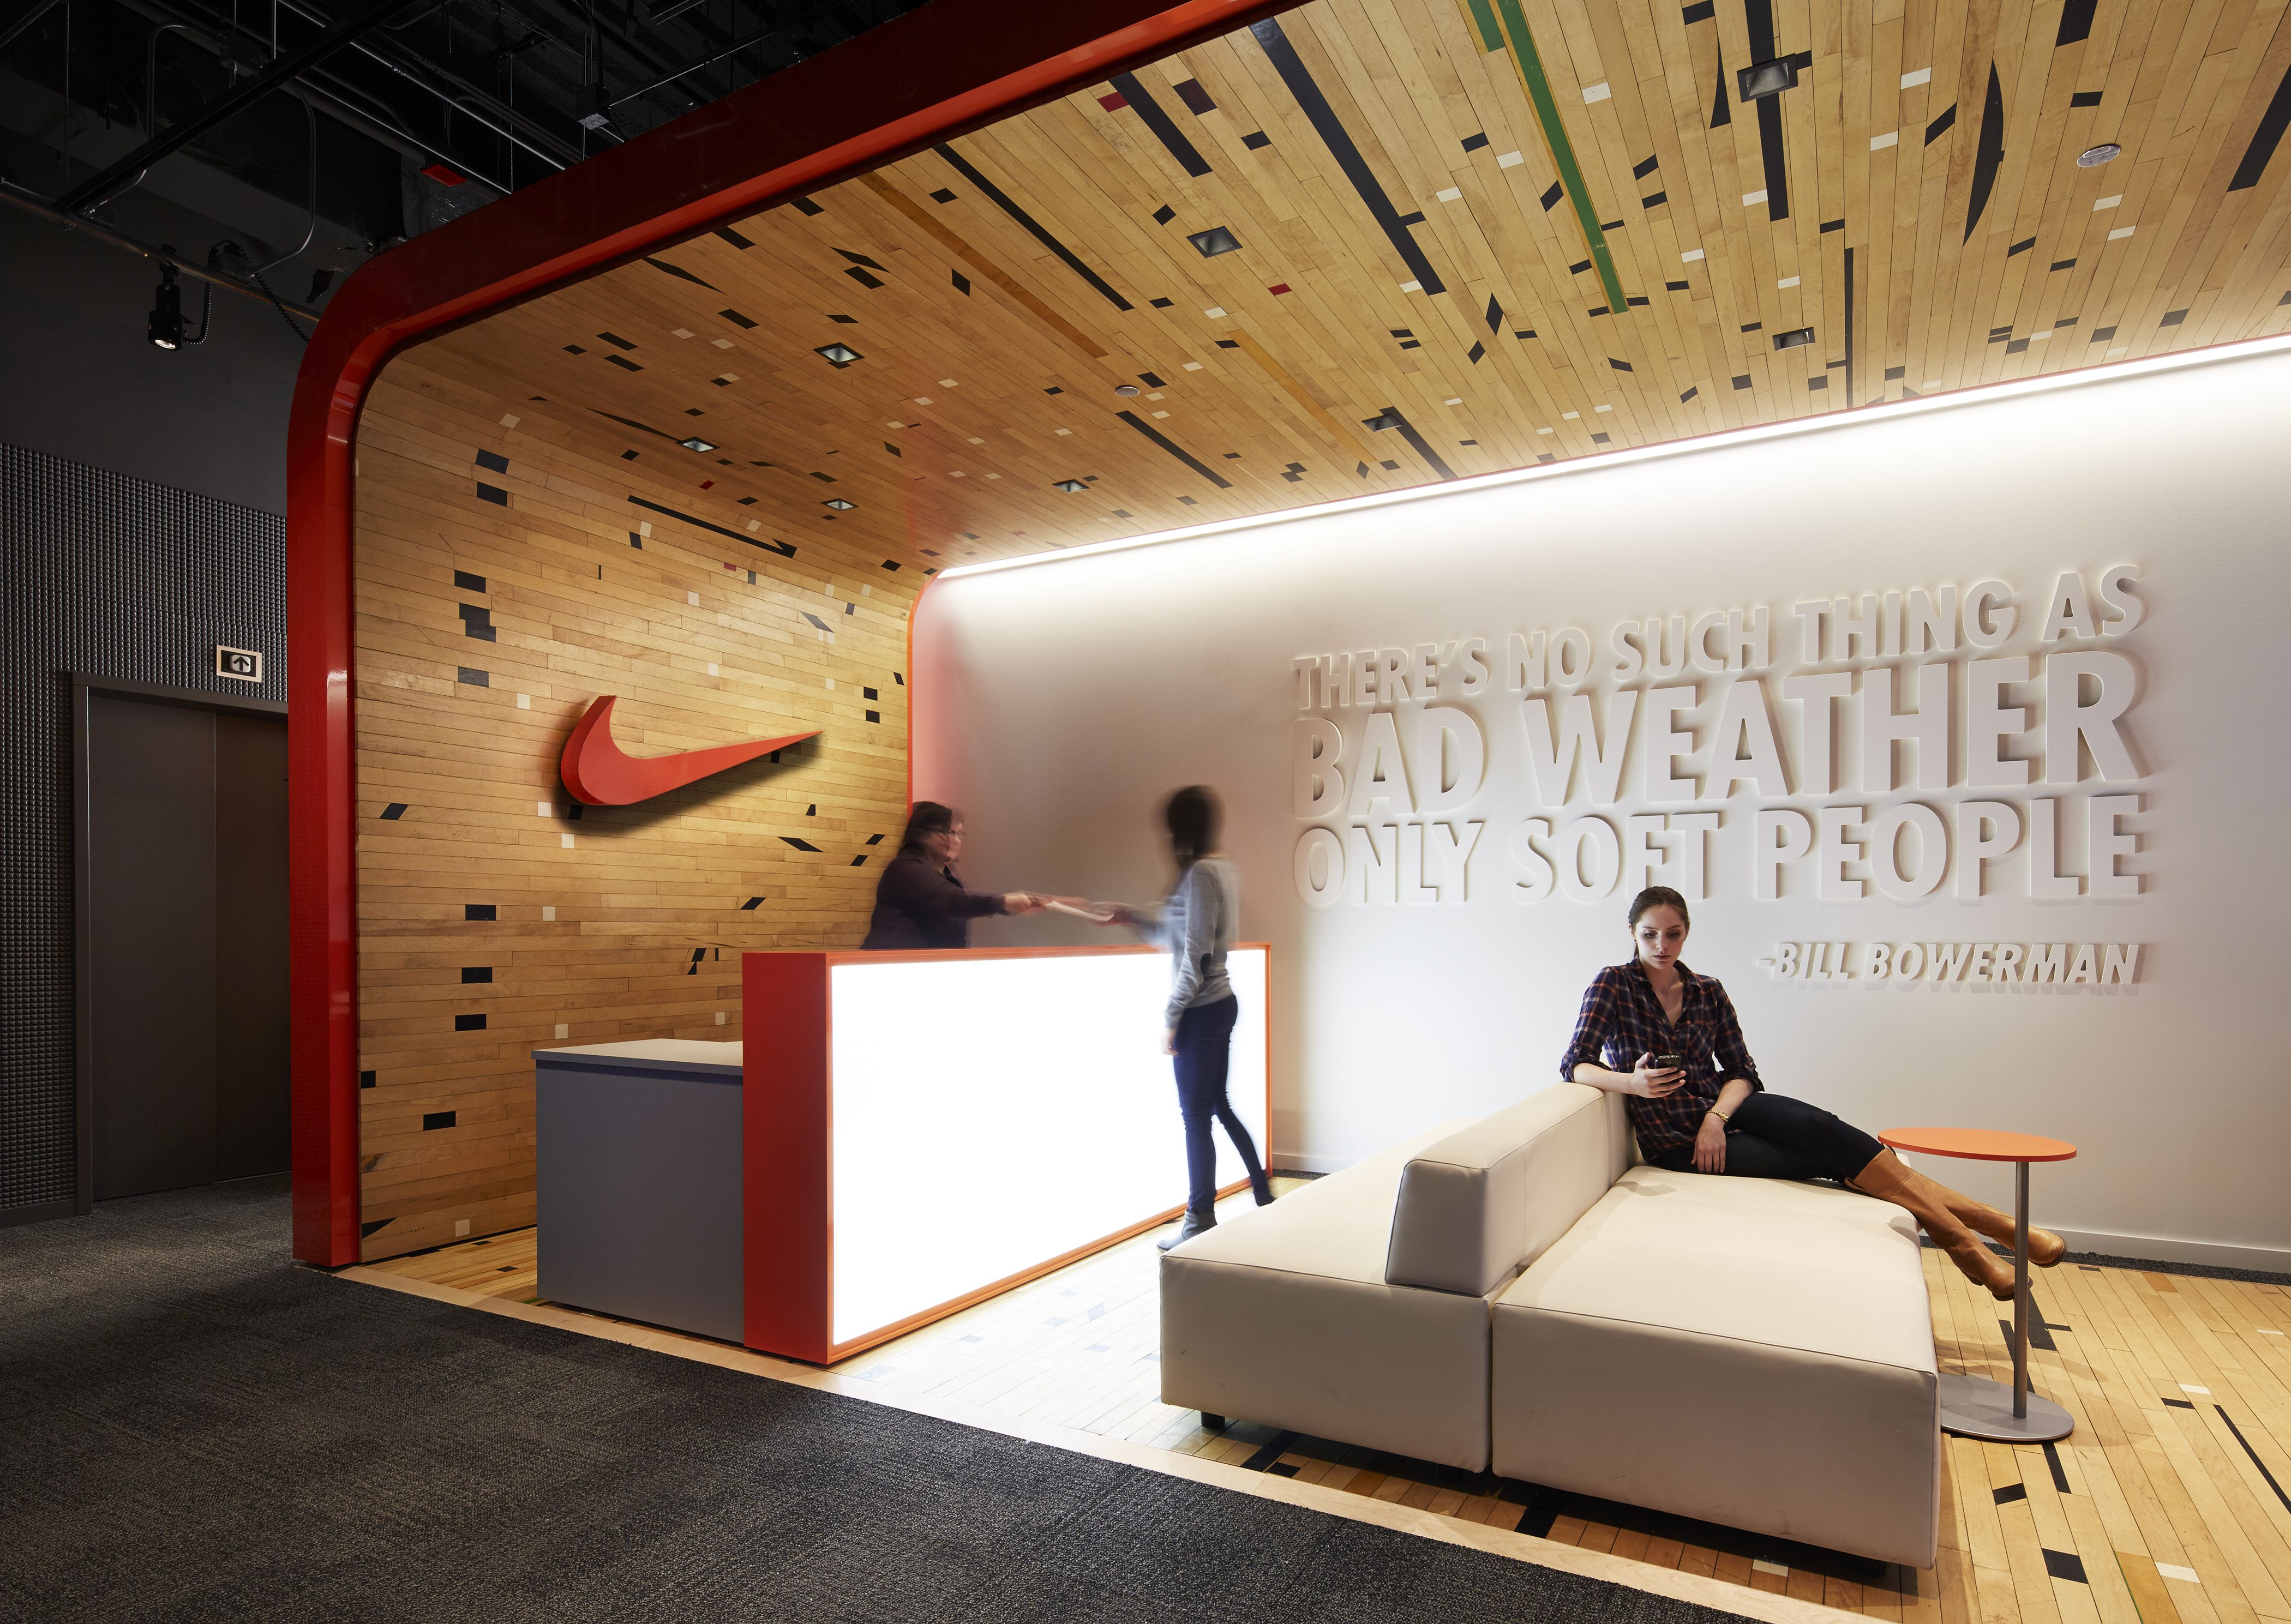 nike chicago hey i designed this retail design pinterest nike outfits nike free und. Black Bedroom Furniture Sets. Home Design Ideas